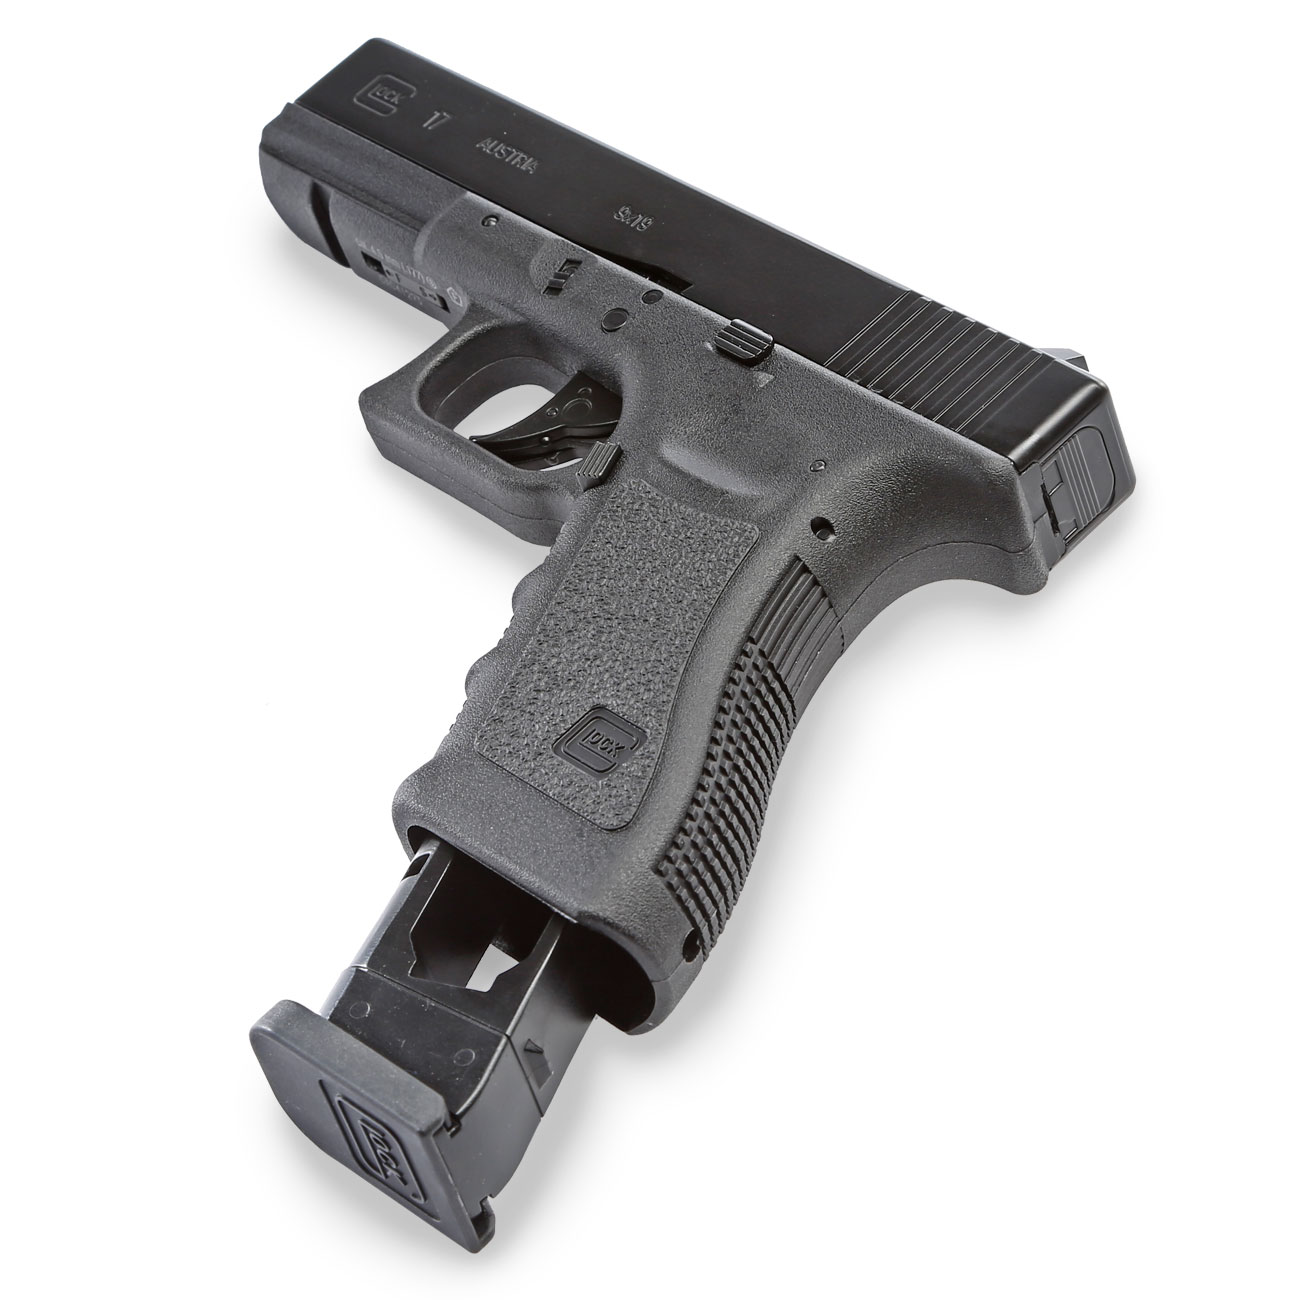 Glock 17 CO2 Luftpistole Kal. 4,5 mm BB 7